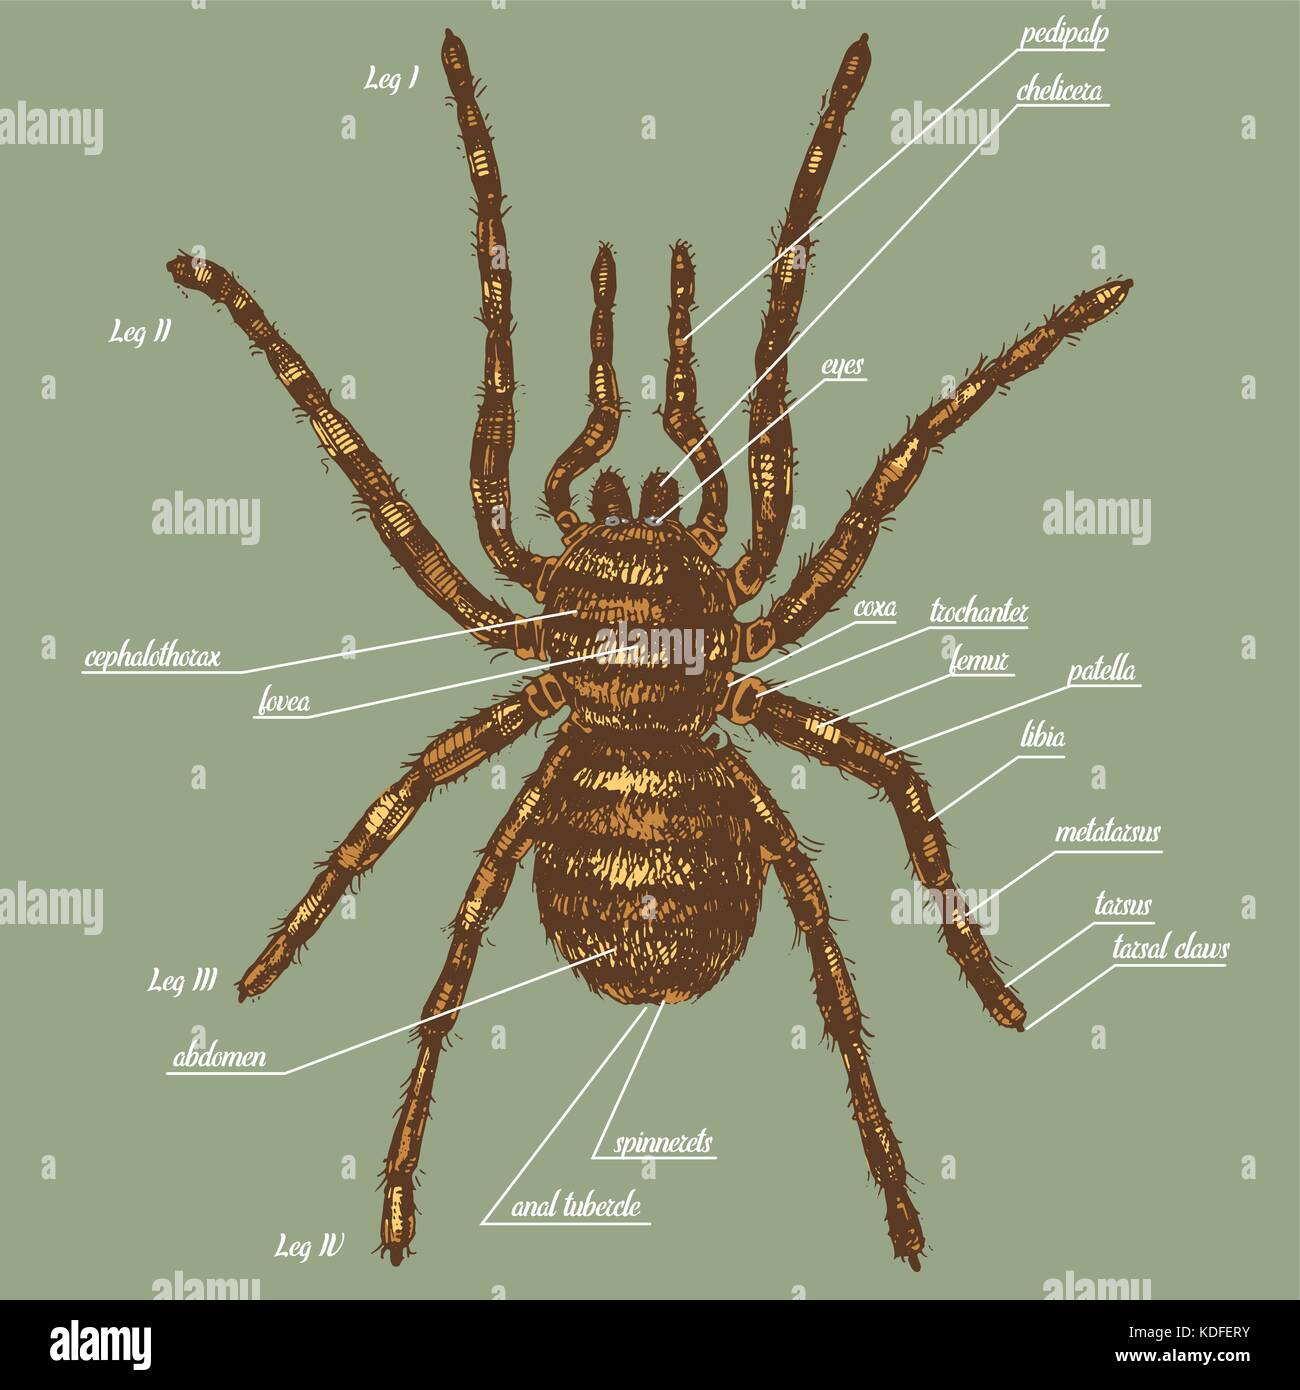 Illustration Of A Spider Anatomy Include All Name Of Animal Parts